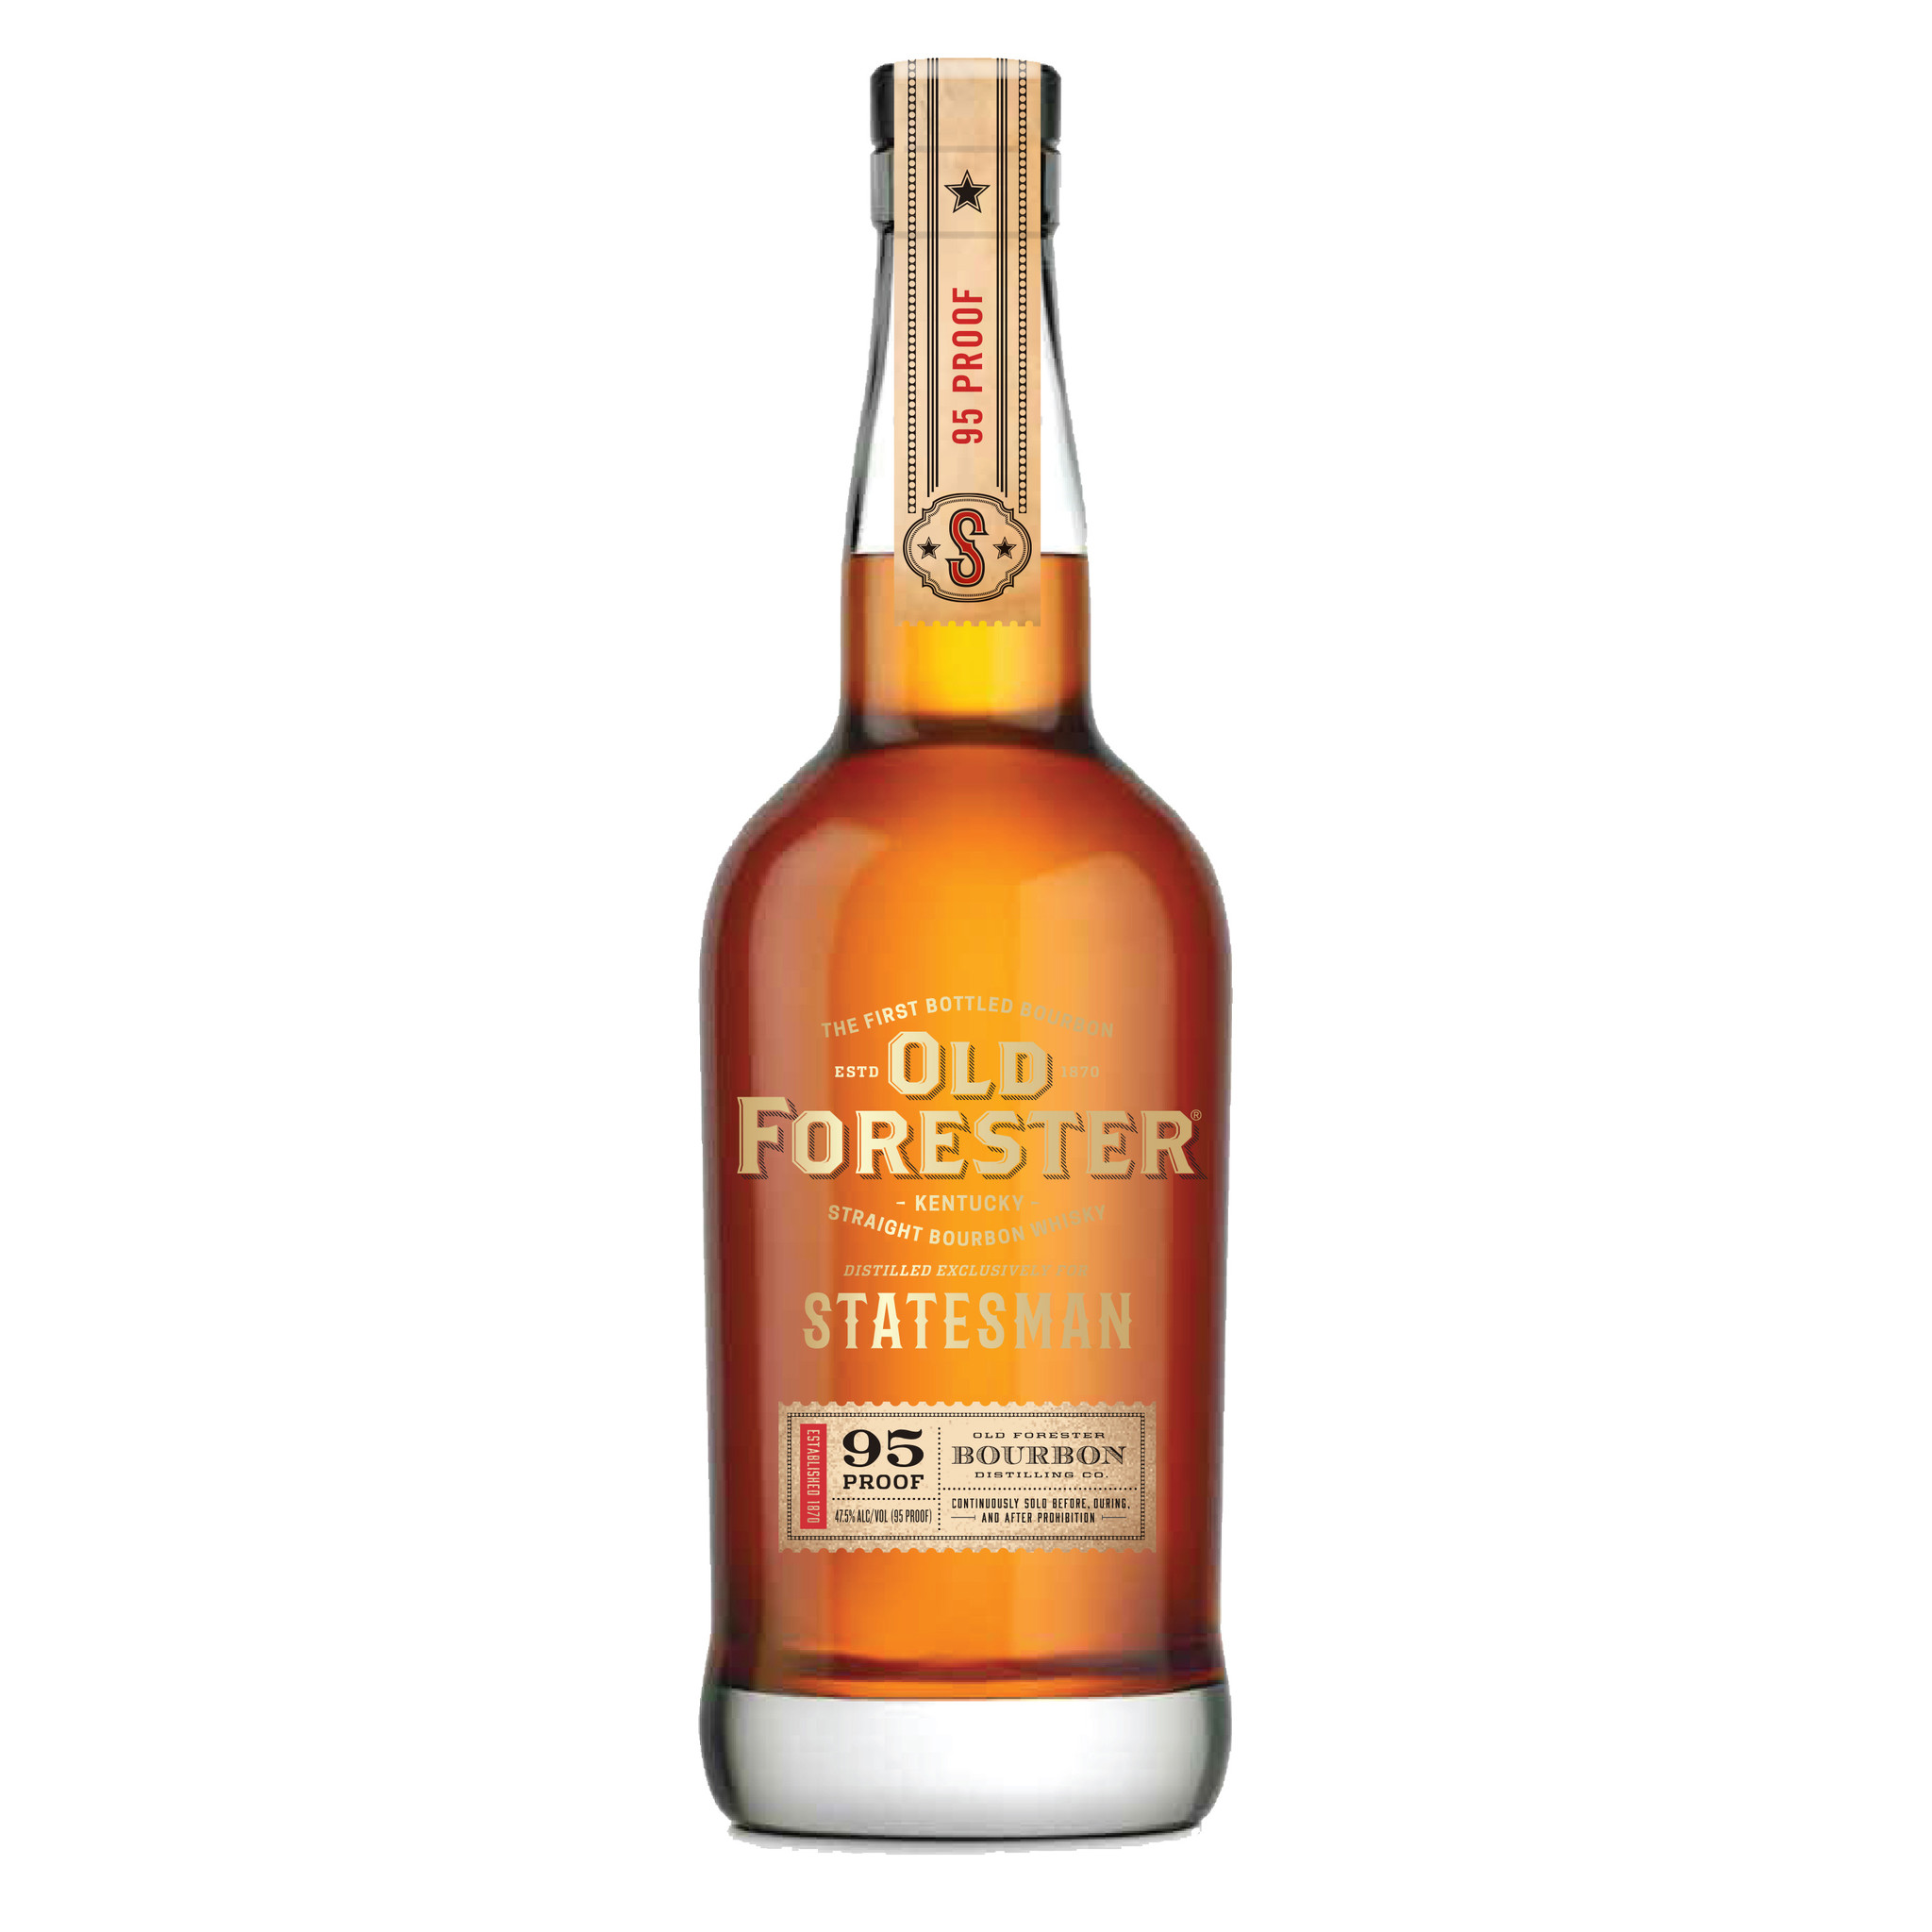 OLD FORESTER STATESMAN, 750 ml